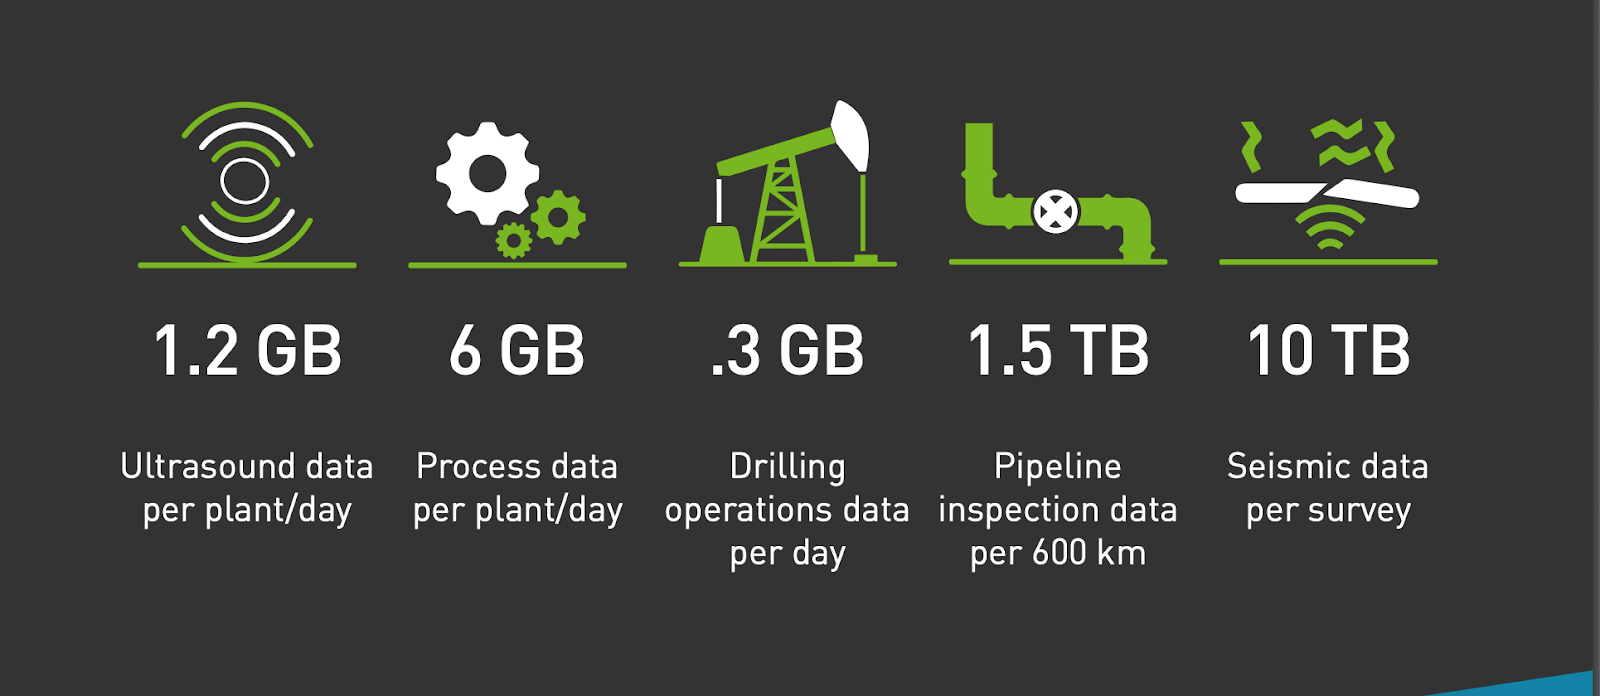 Operational data produced daily by industry